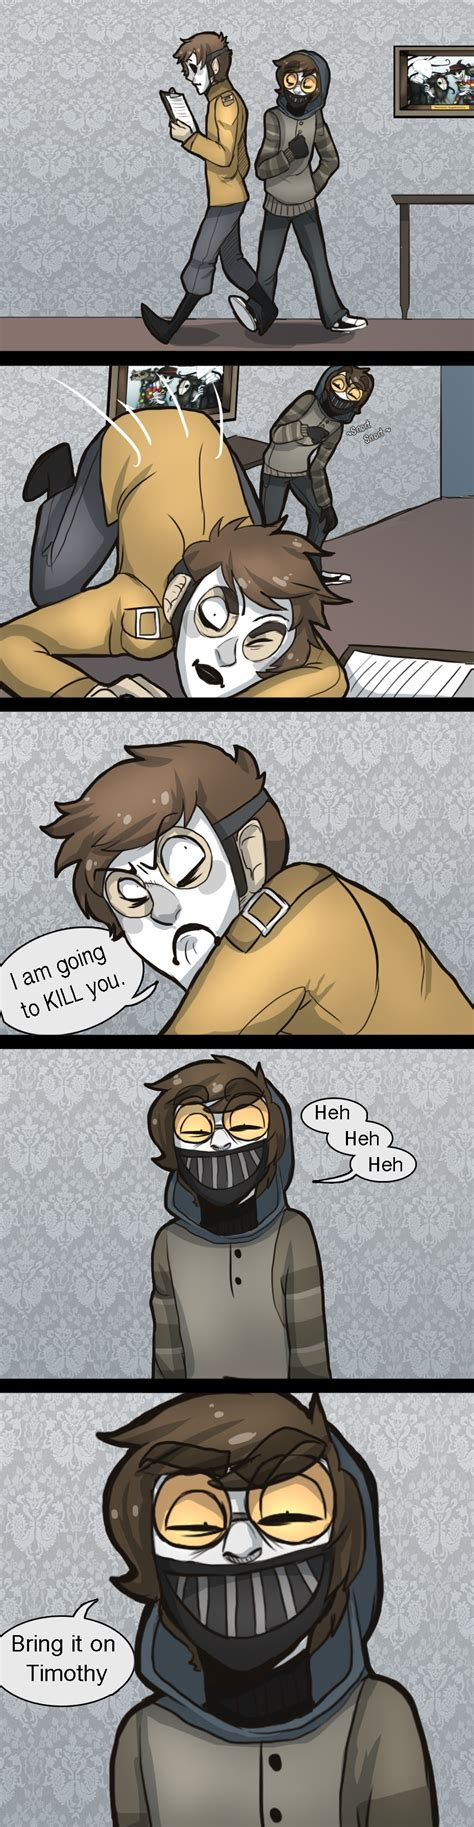 Pin by emily note on creepypasta fangirl pinterest